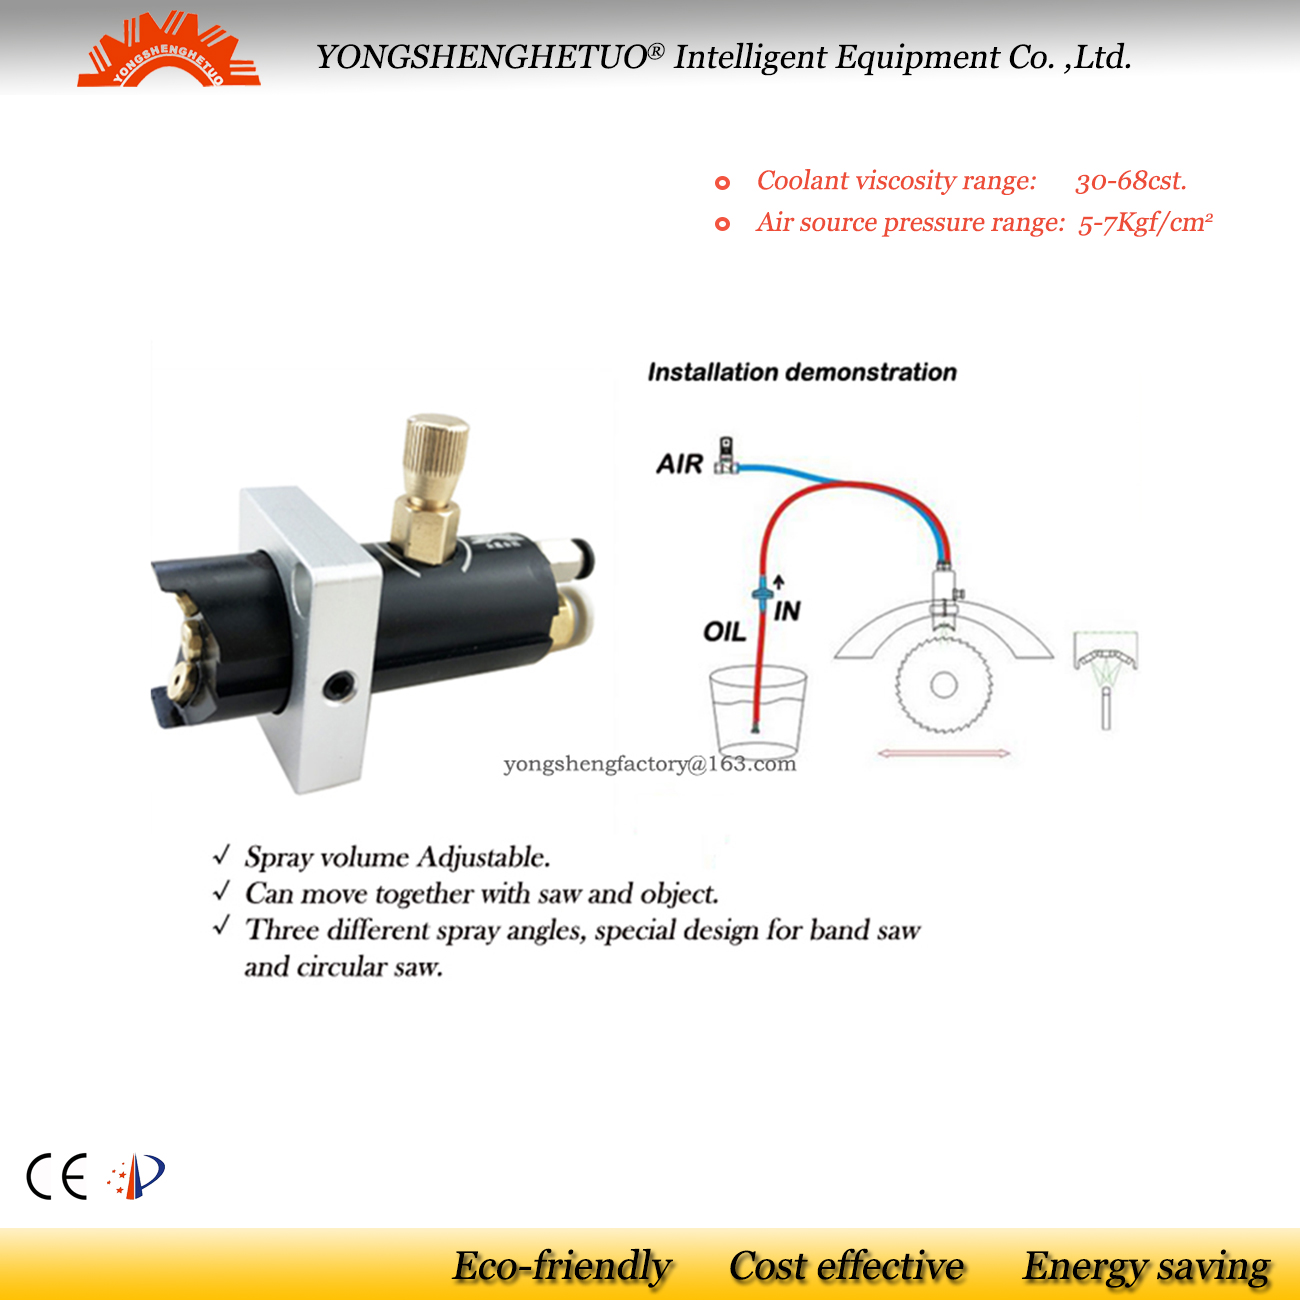 Metalworking coolant hose oil mist sprayer cutting cooling nozzle circular saw band saw metal cutting dedicated